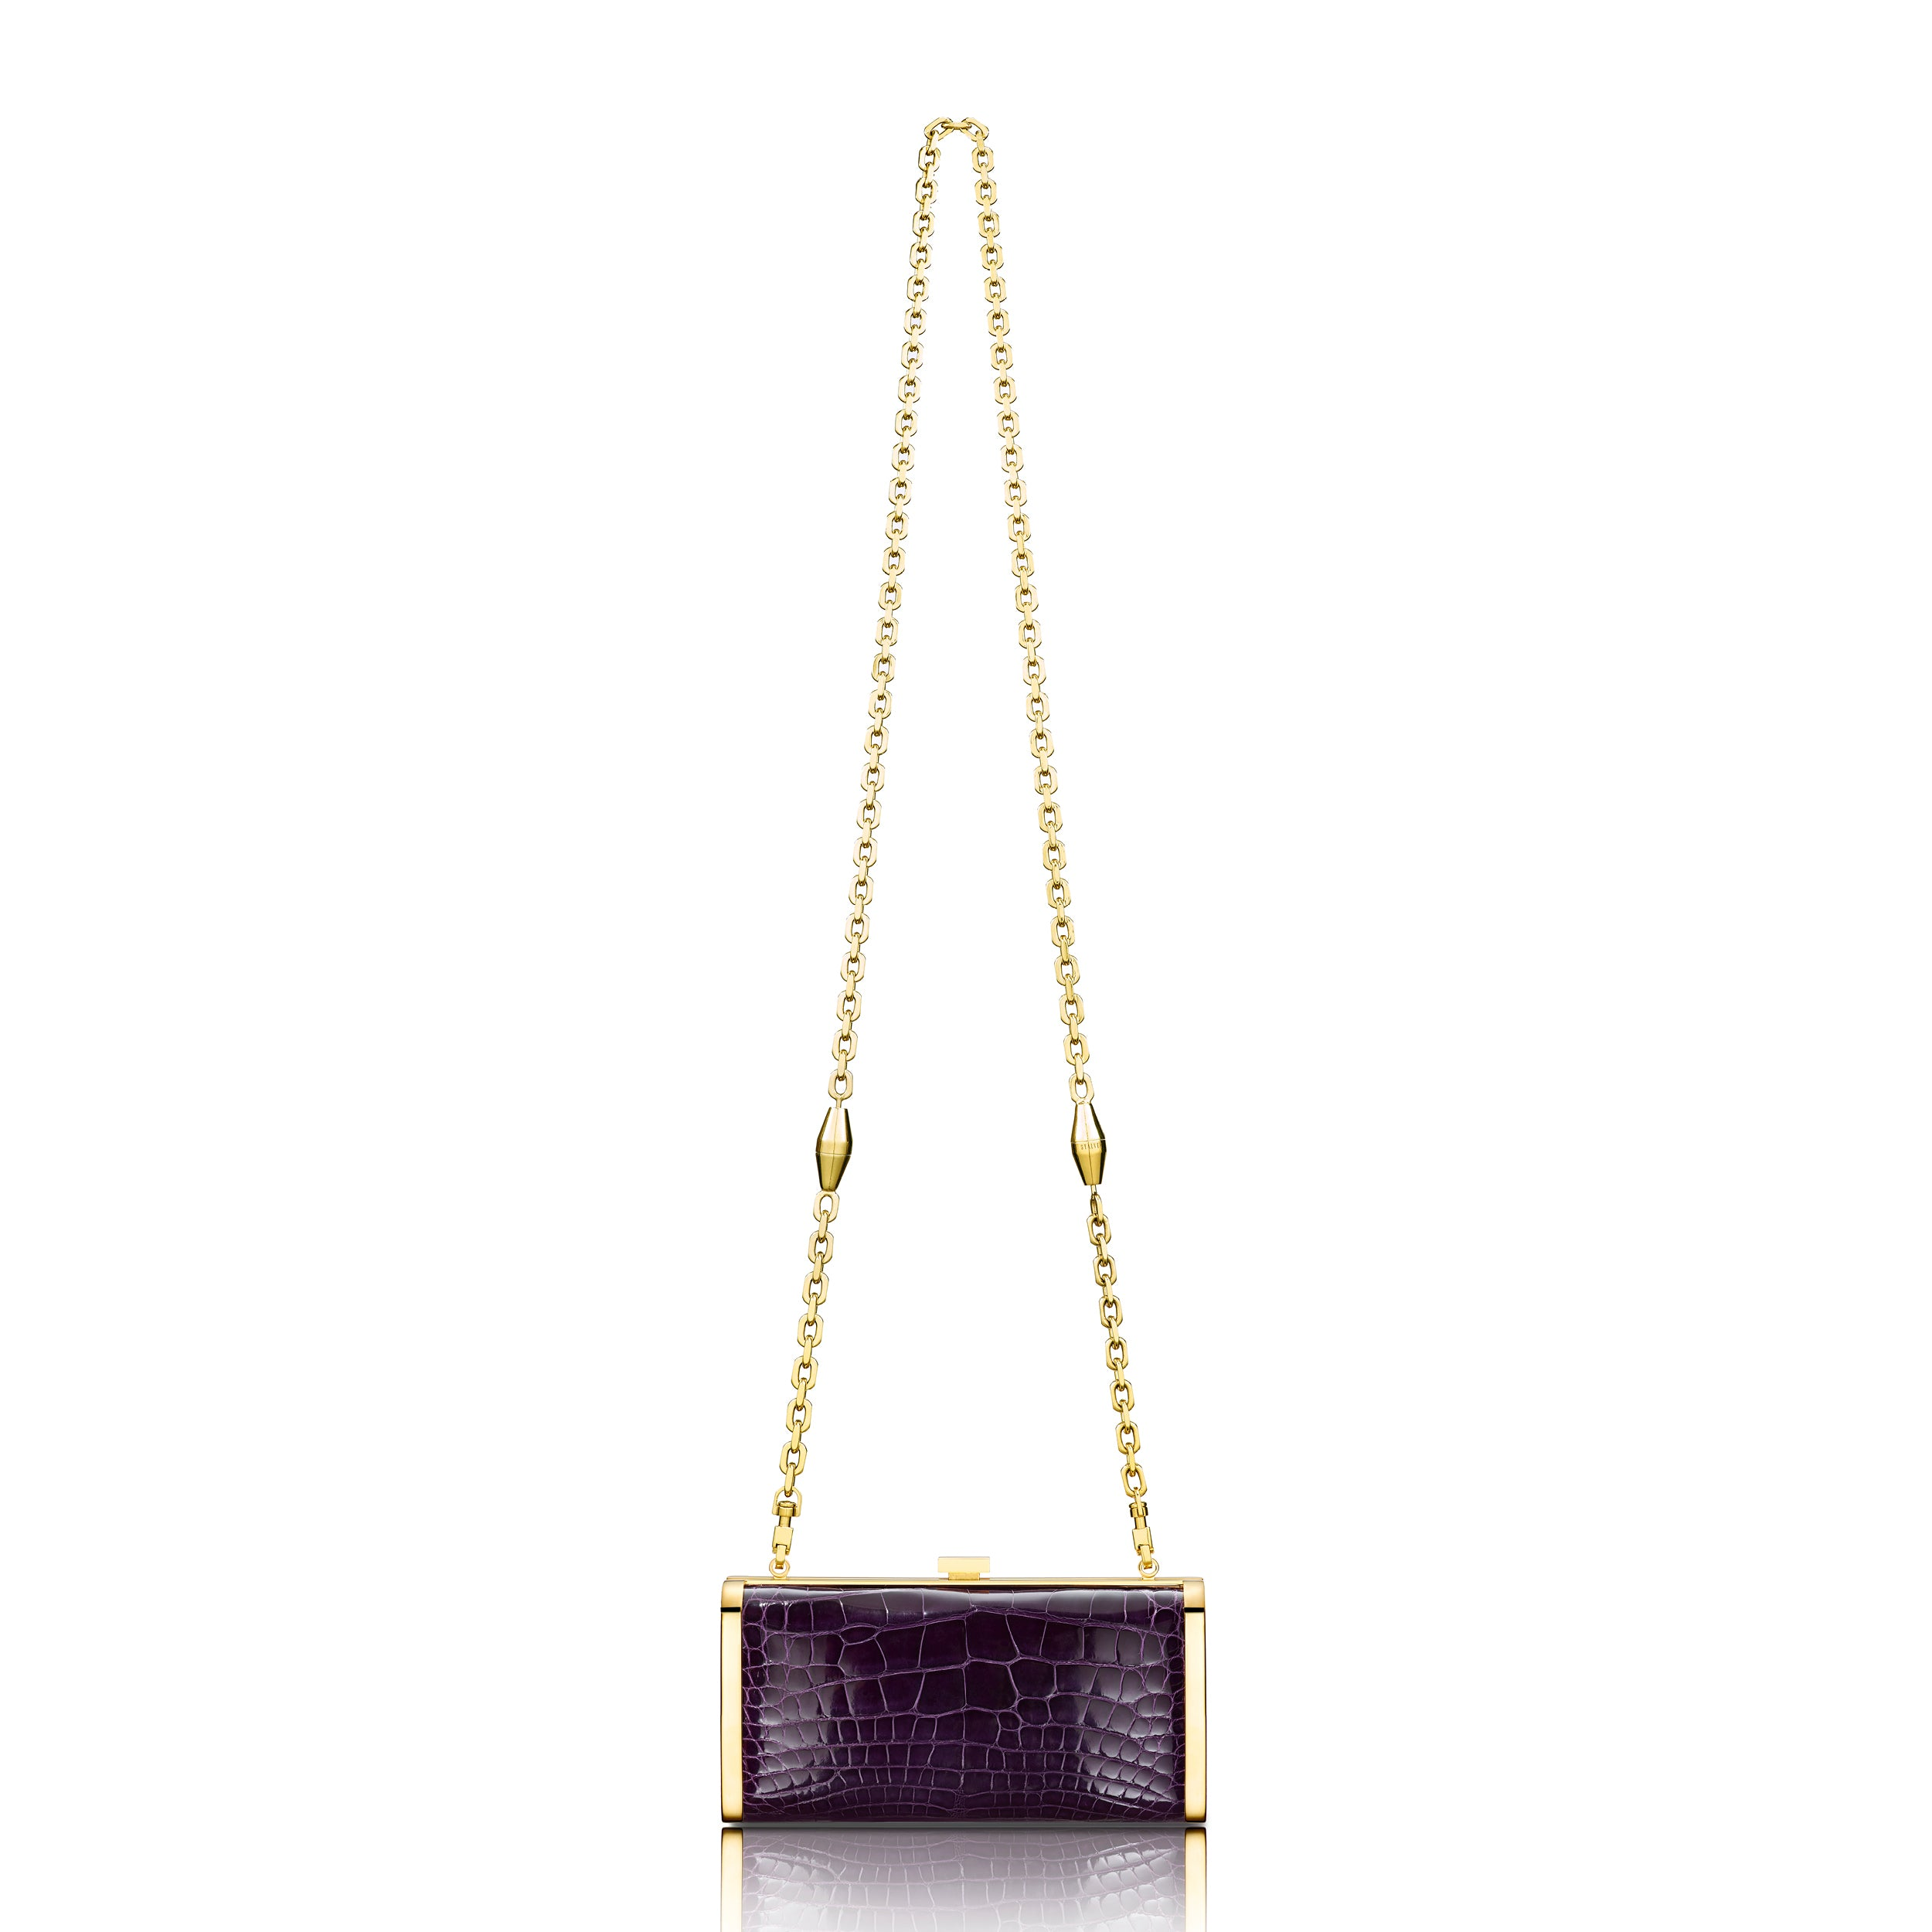 Square Clutch - Royal Purple Alligator